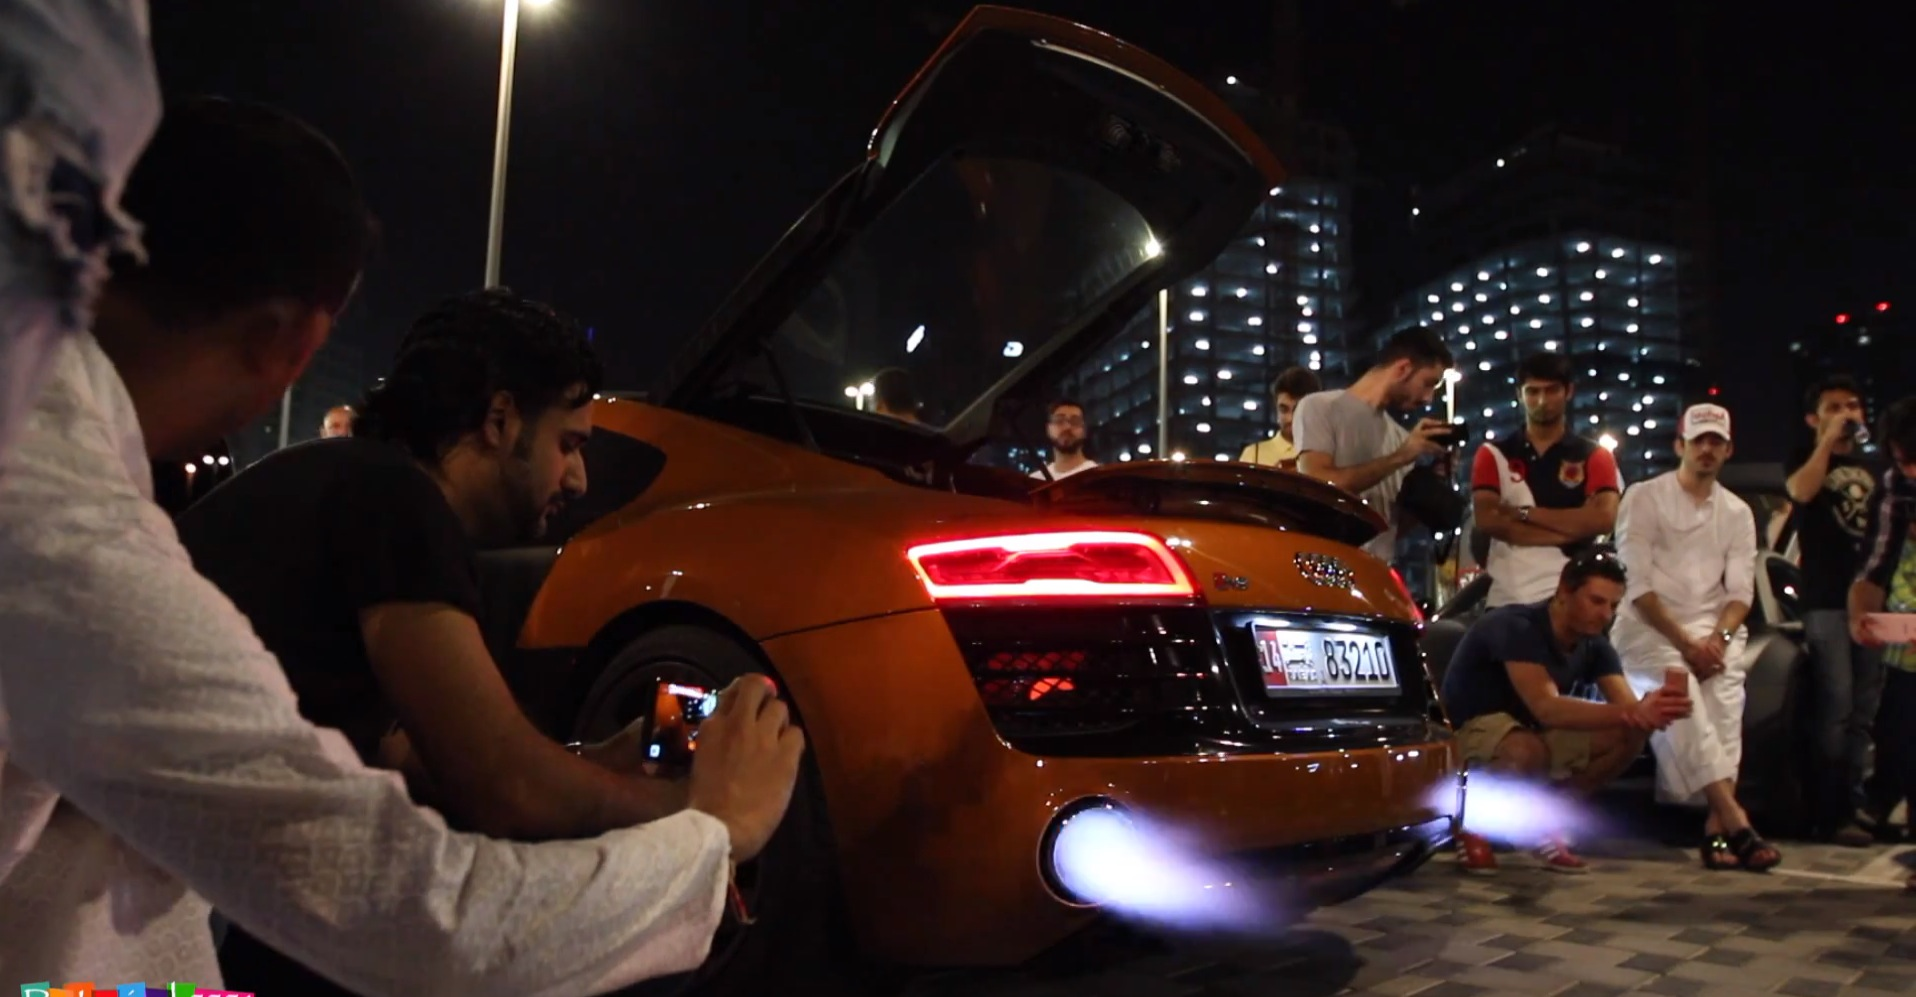 Car Spitting Flames Wallpaper 2014 Audi R8 Spits Exhaust Flames For An Amazing 2 Minutes